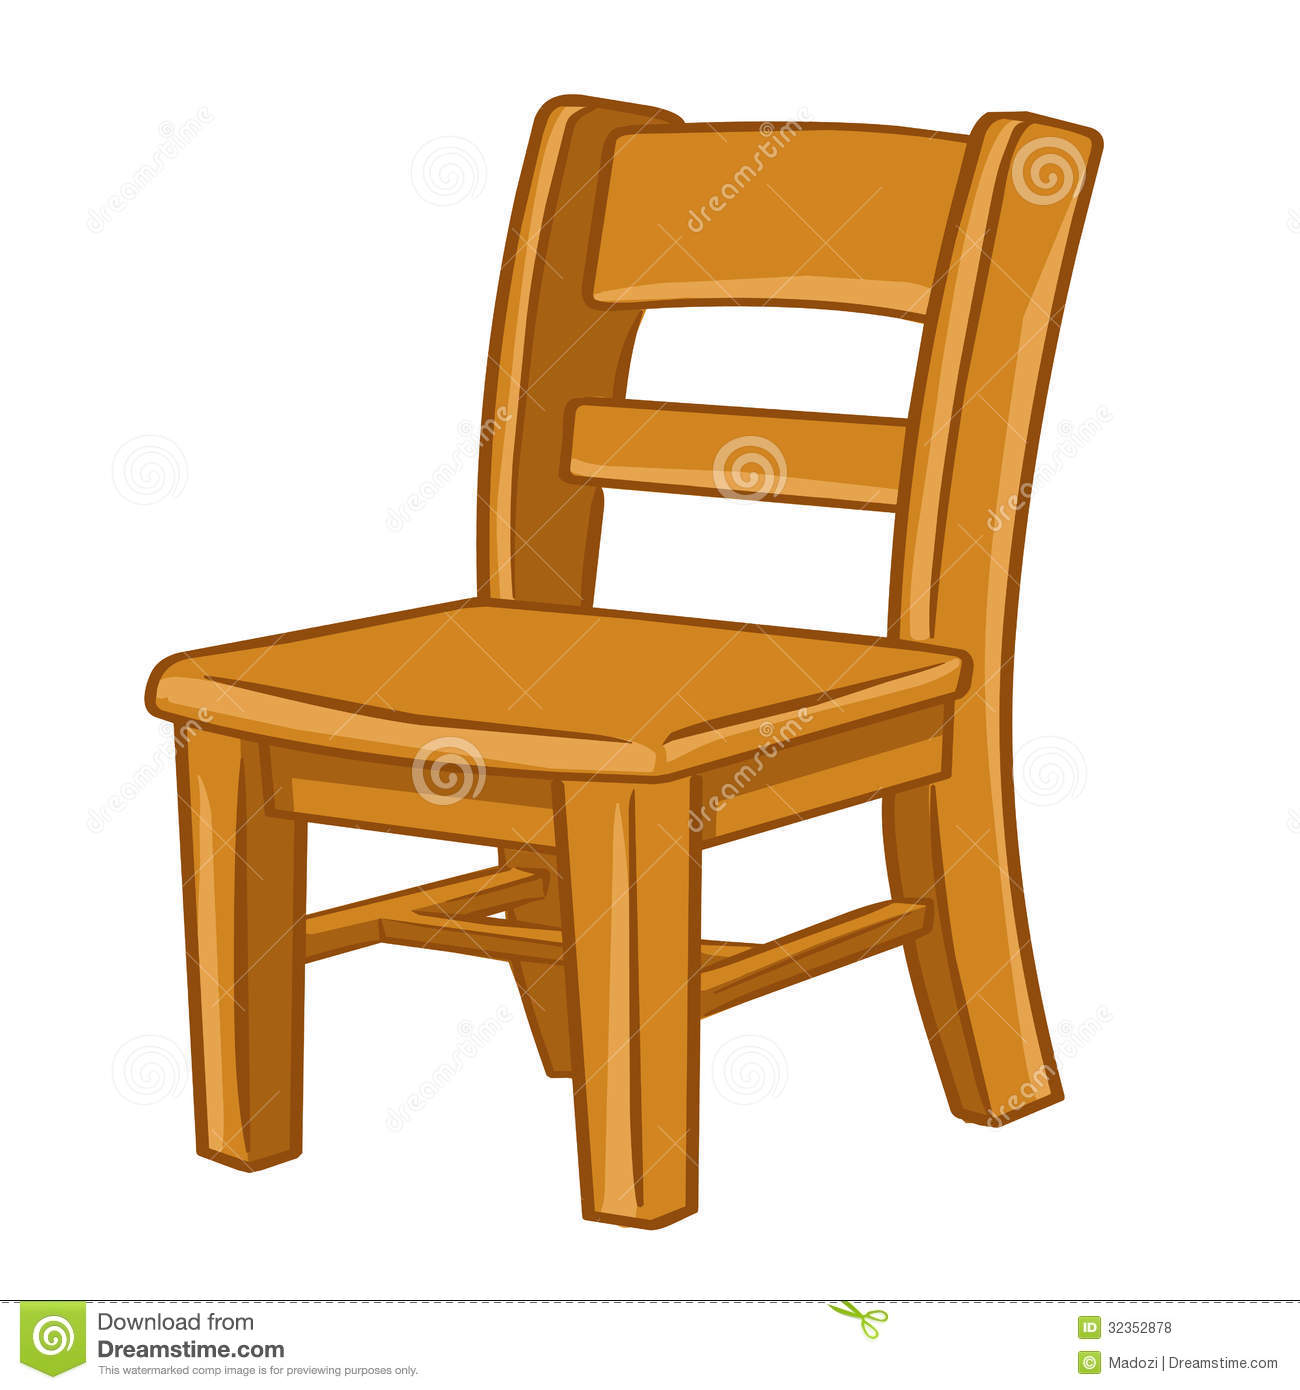 Wood Chair Isolated Illustration Royalty Free Stock Photos ...